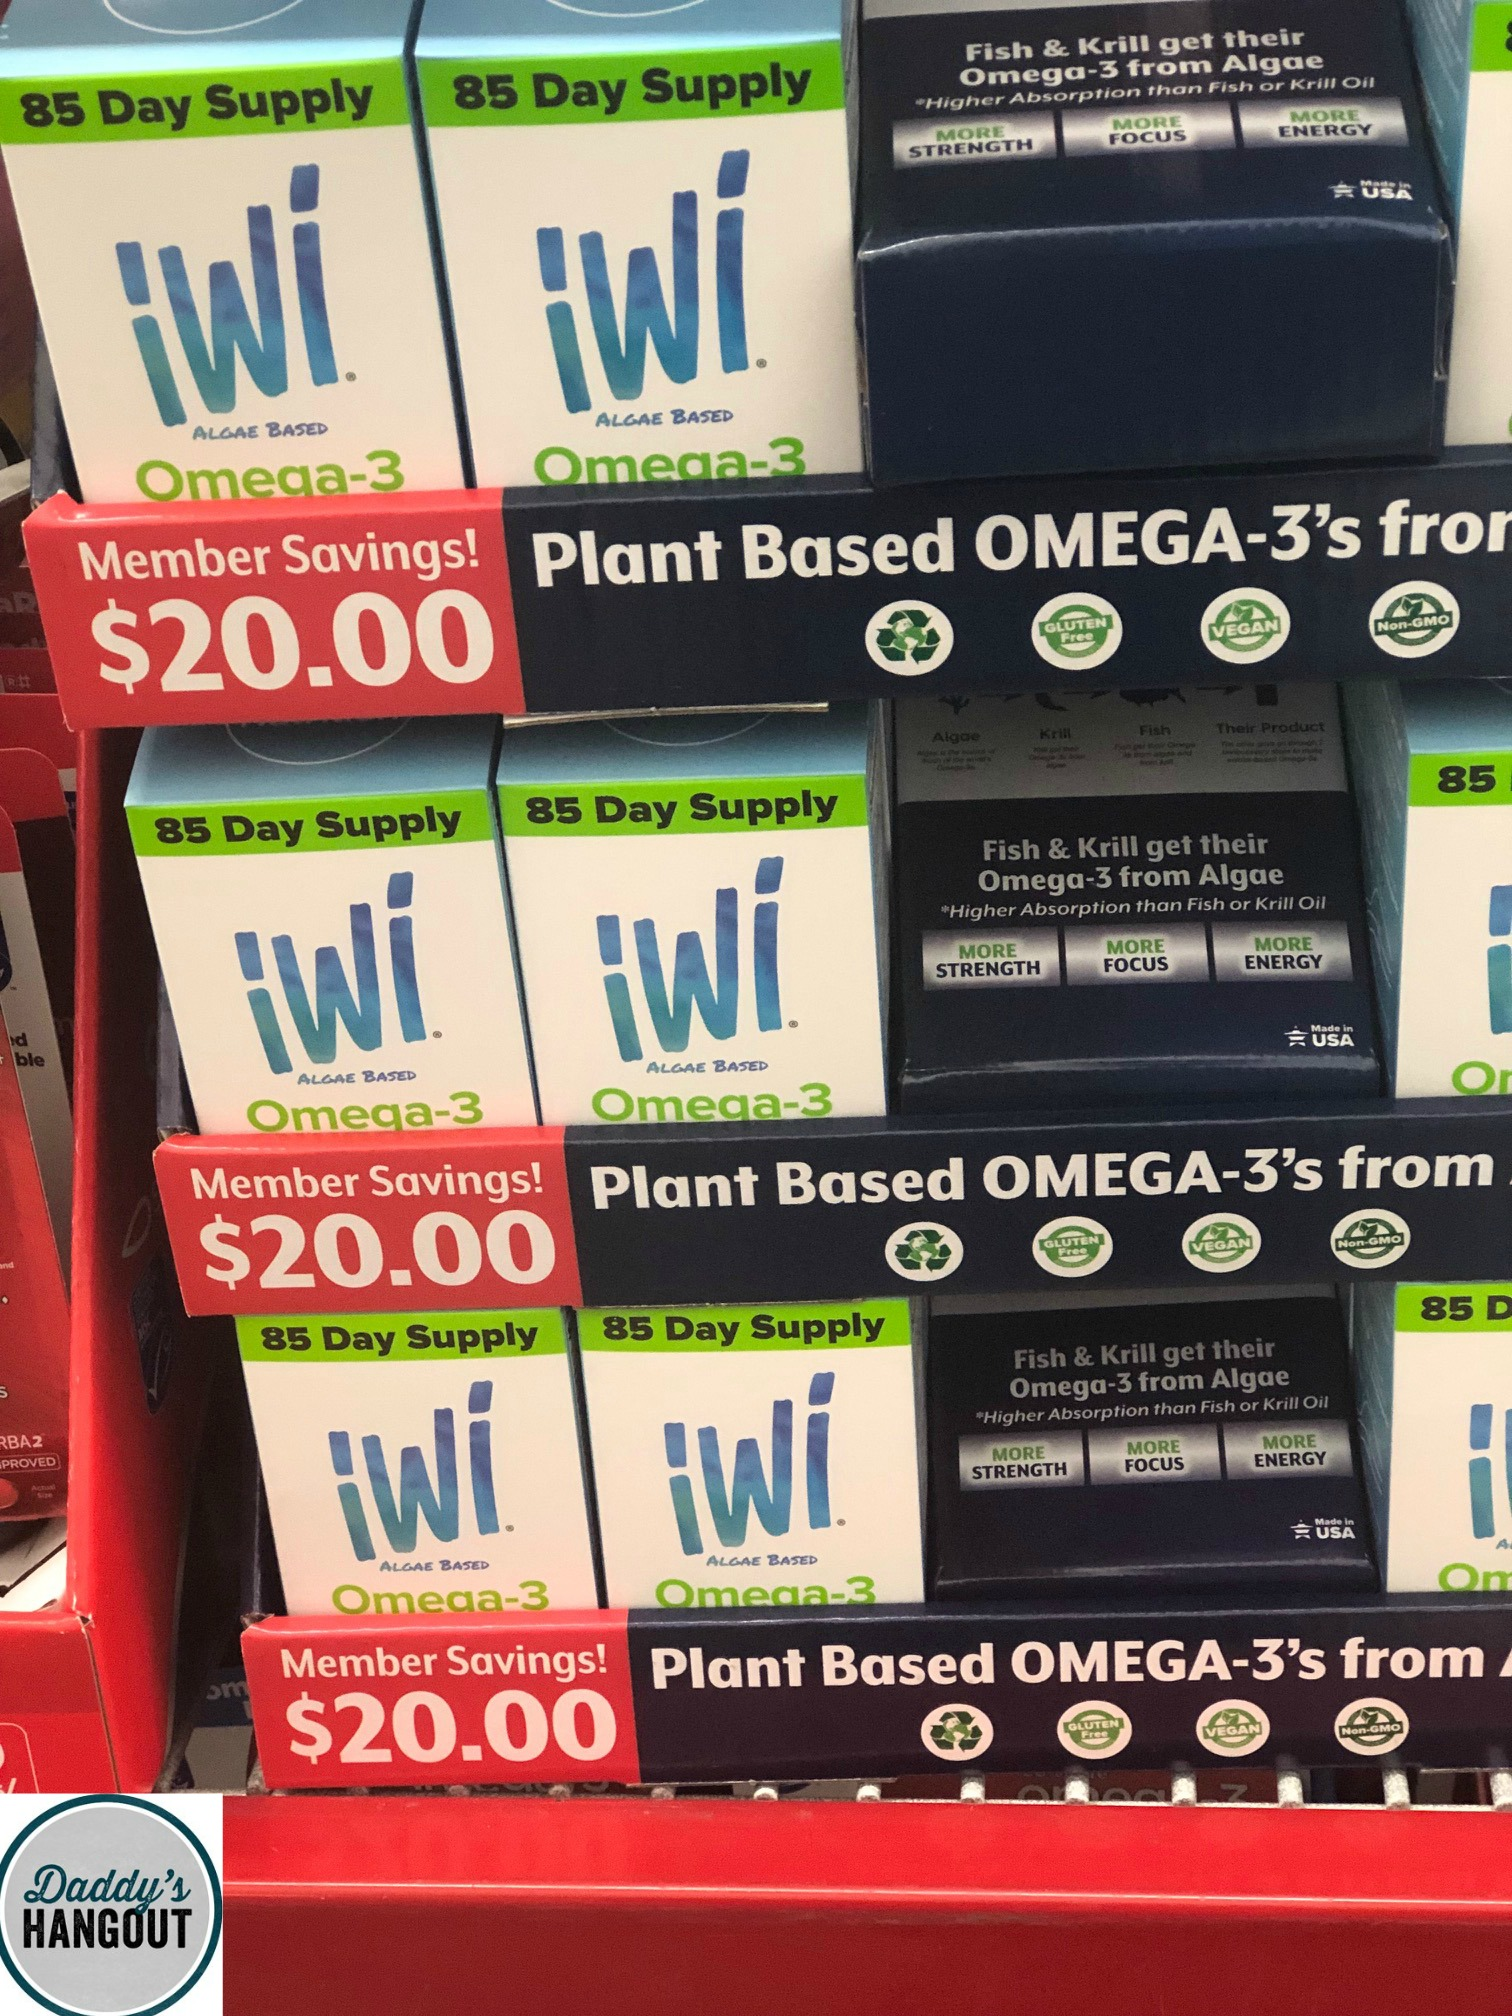 Get Better Omega 3 Supplements Now!!